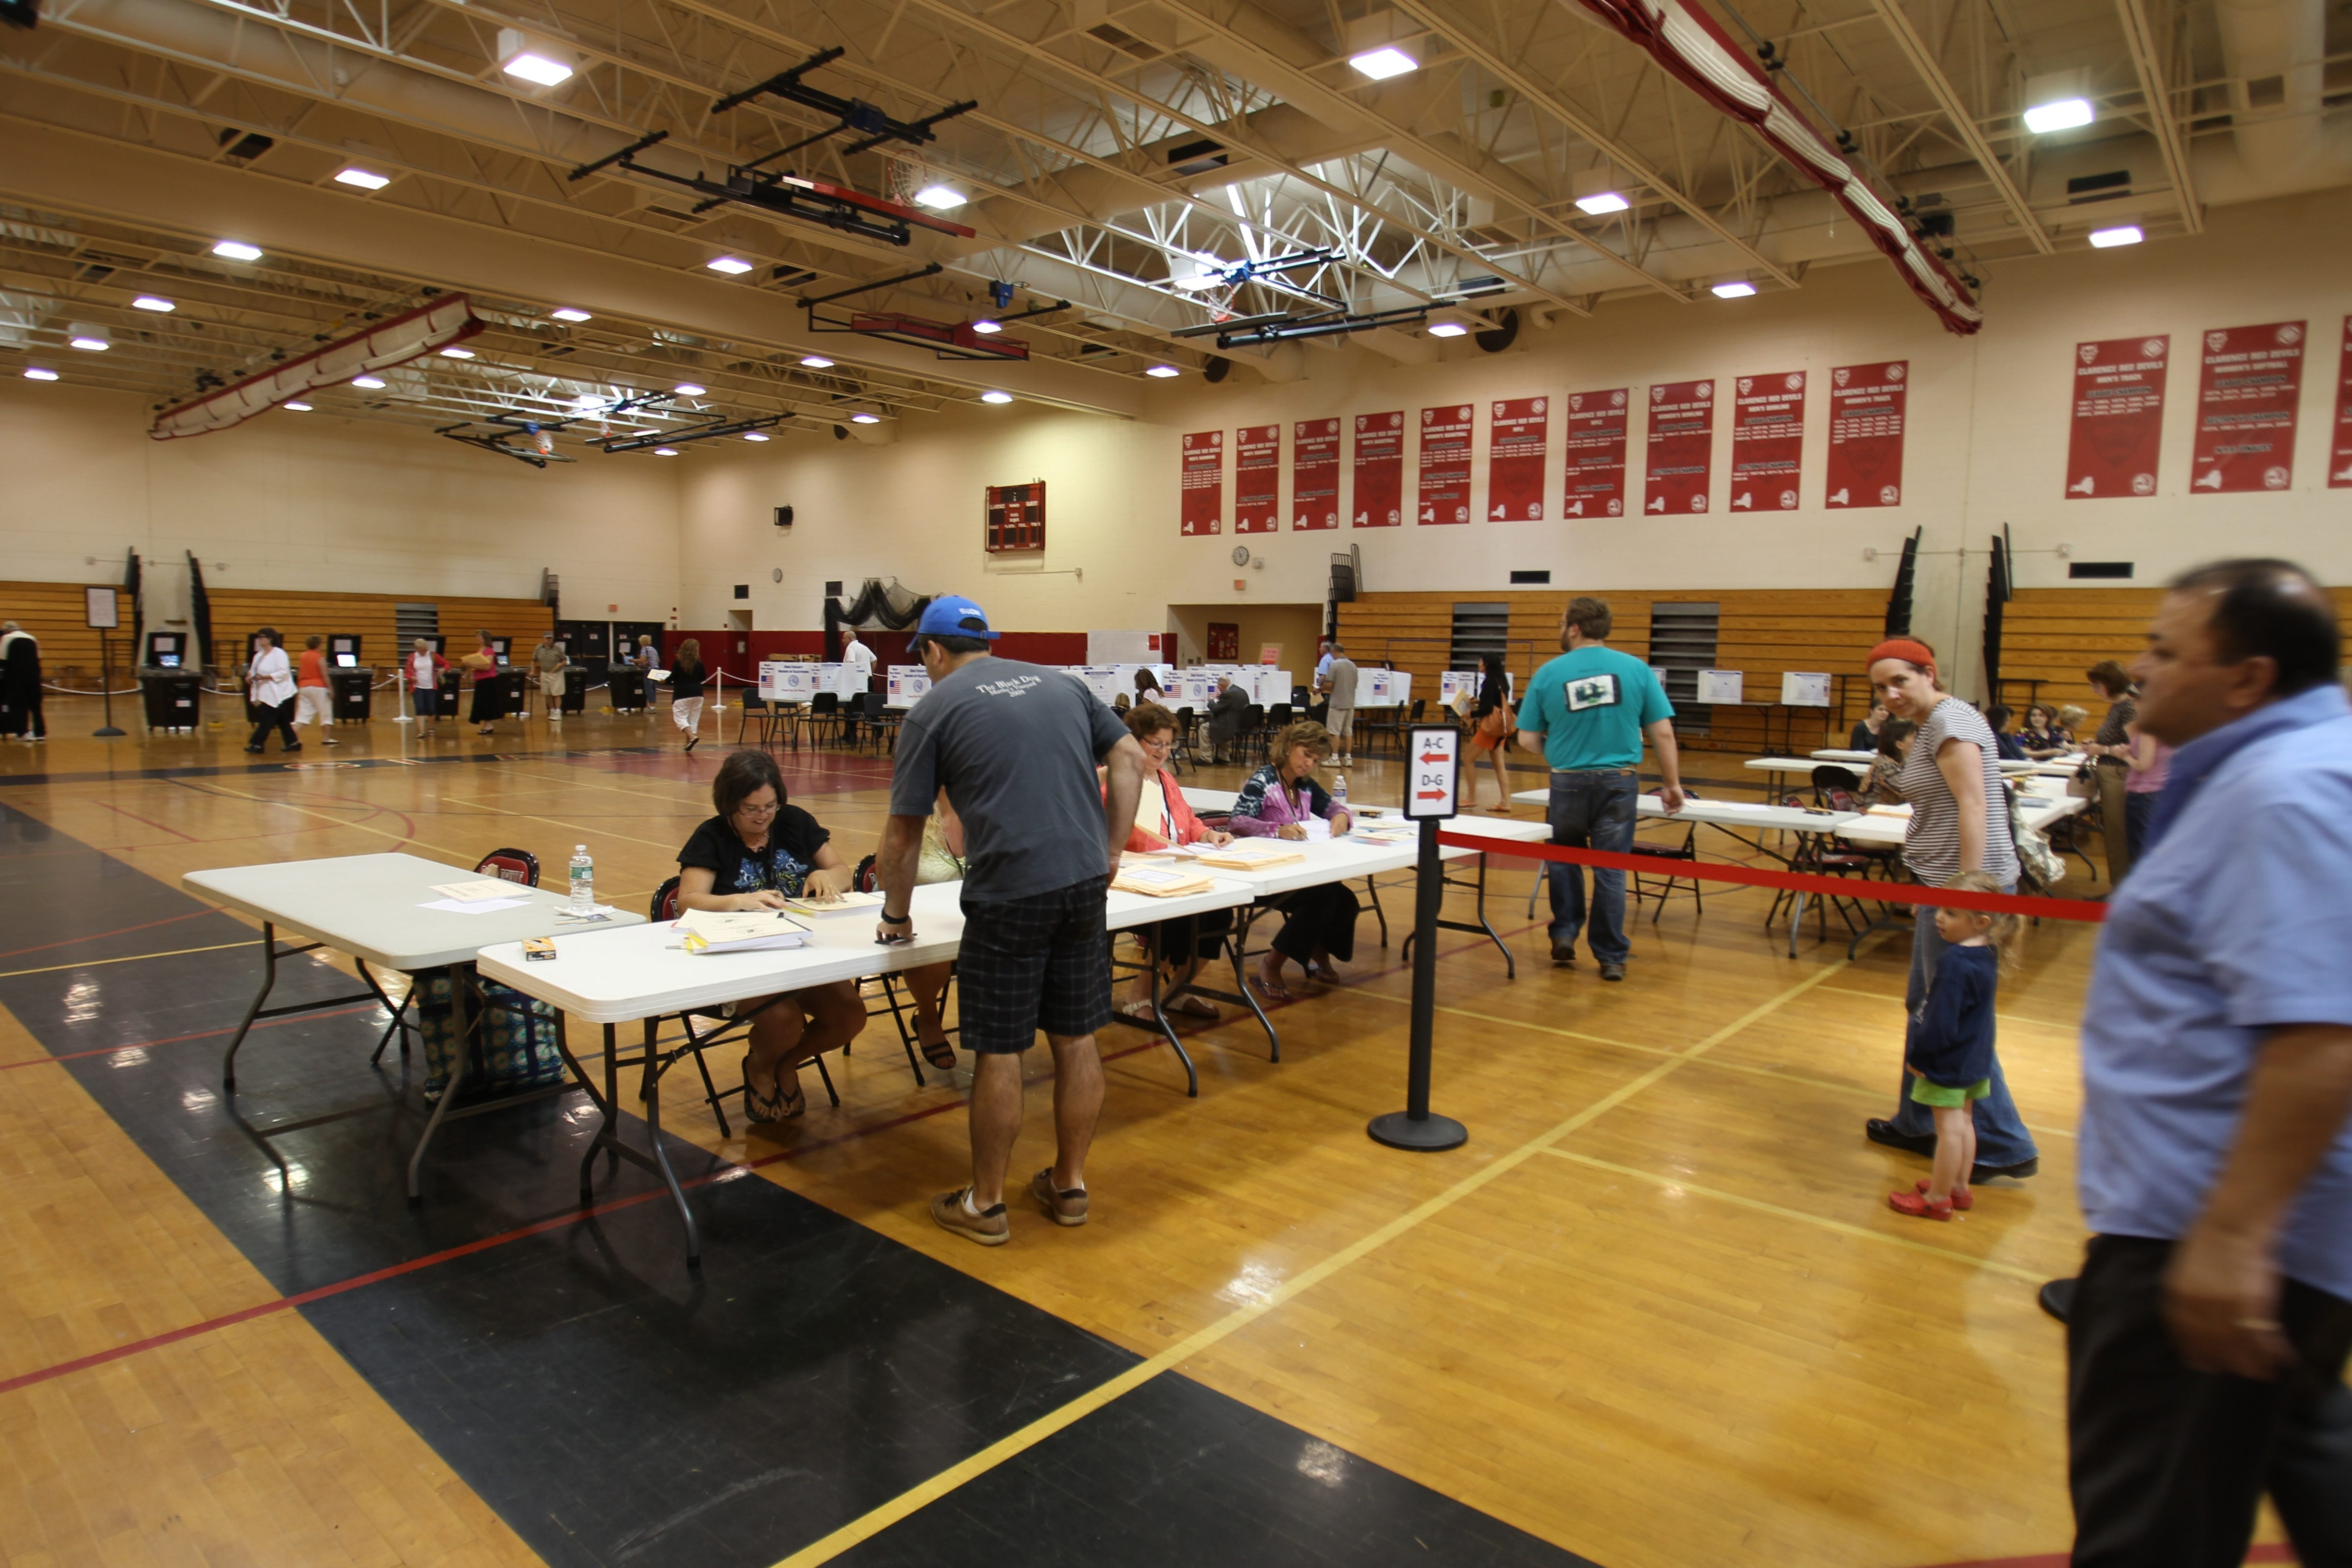 More than 5,000 Clarence voters cast their votes in the much-heated school budget vote at Clarence High School on Tuesday.